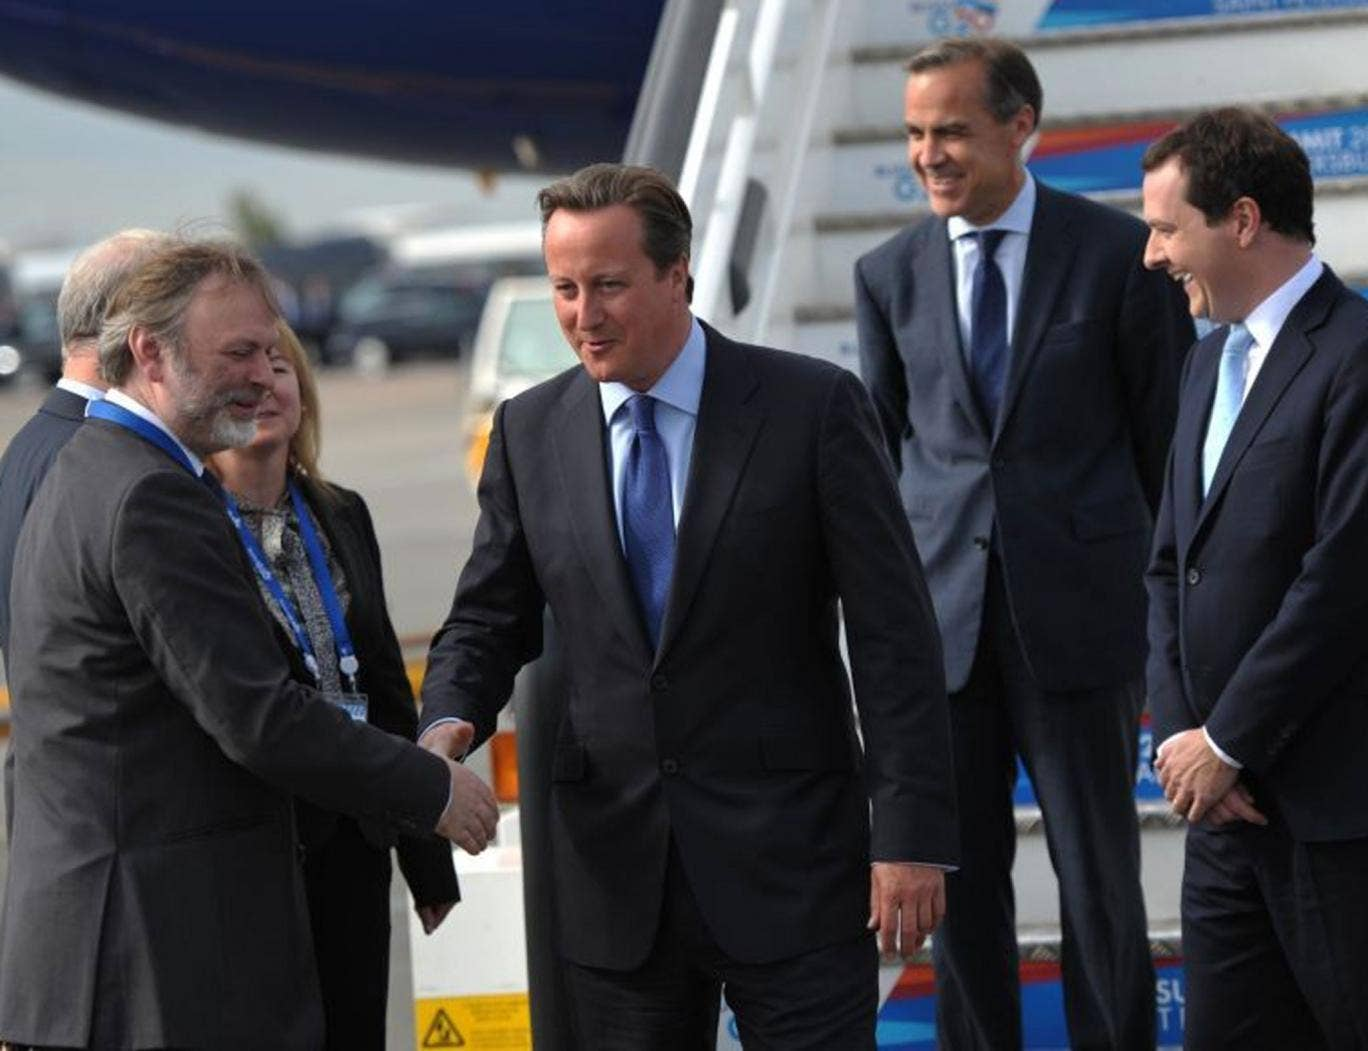 David Cameron, George Osborne, and Mark Carney arrive at the G20 summit in St. Petersburg